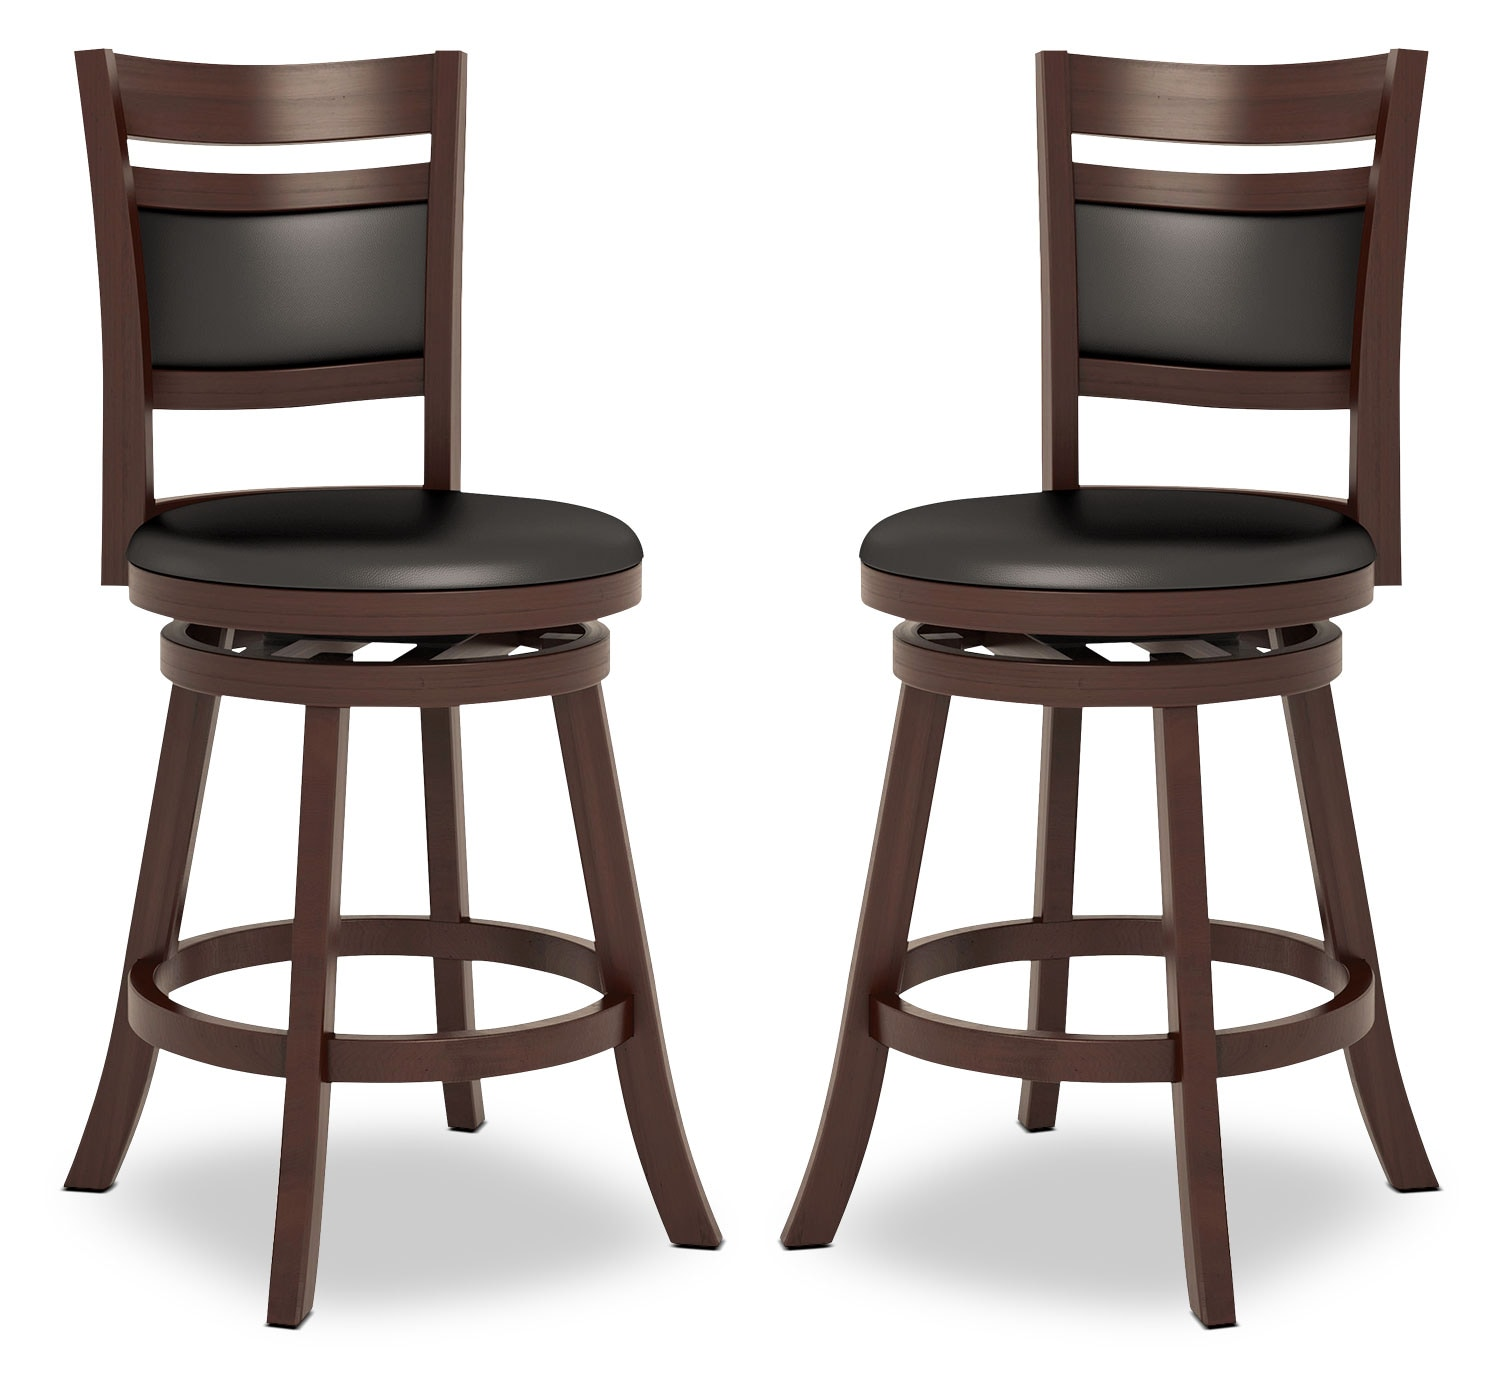 "Woodgrove 38"" Bar Stool, Set of 2 – Cushion Back"